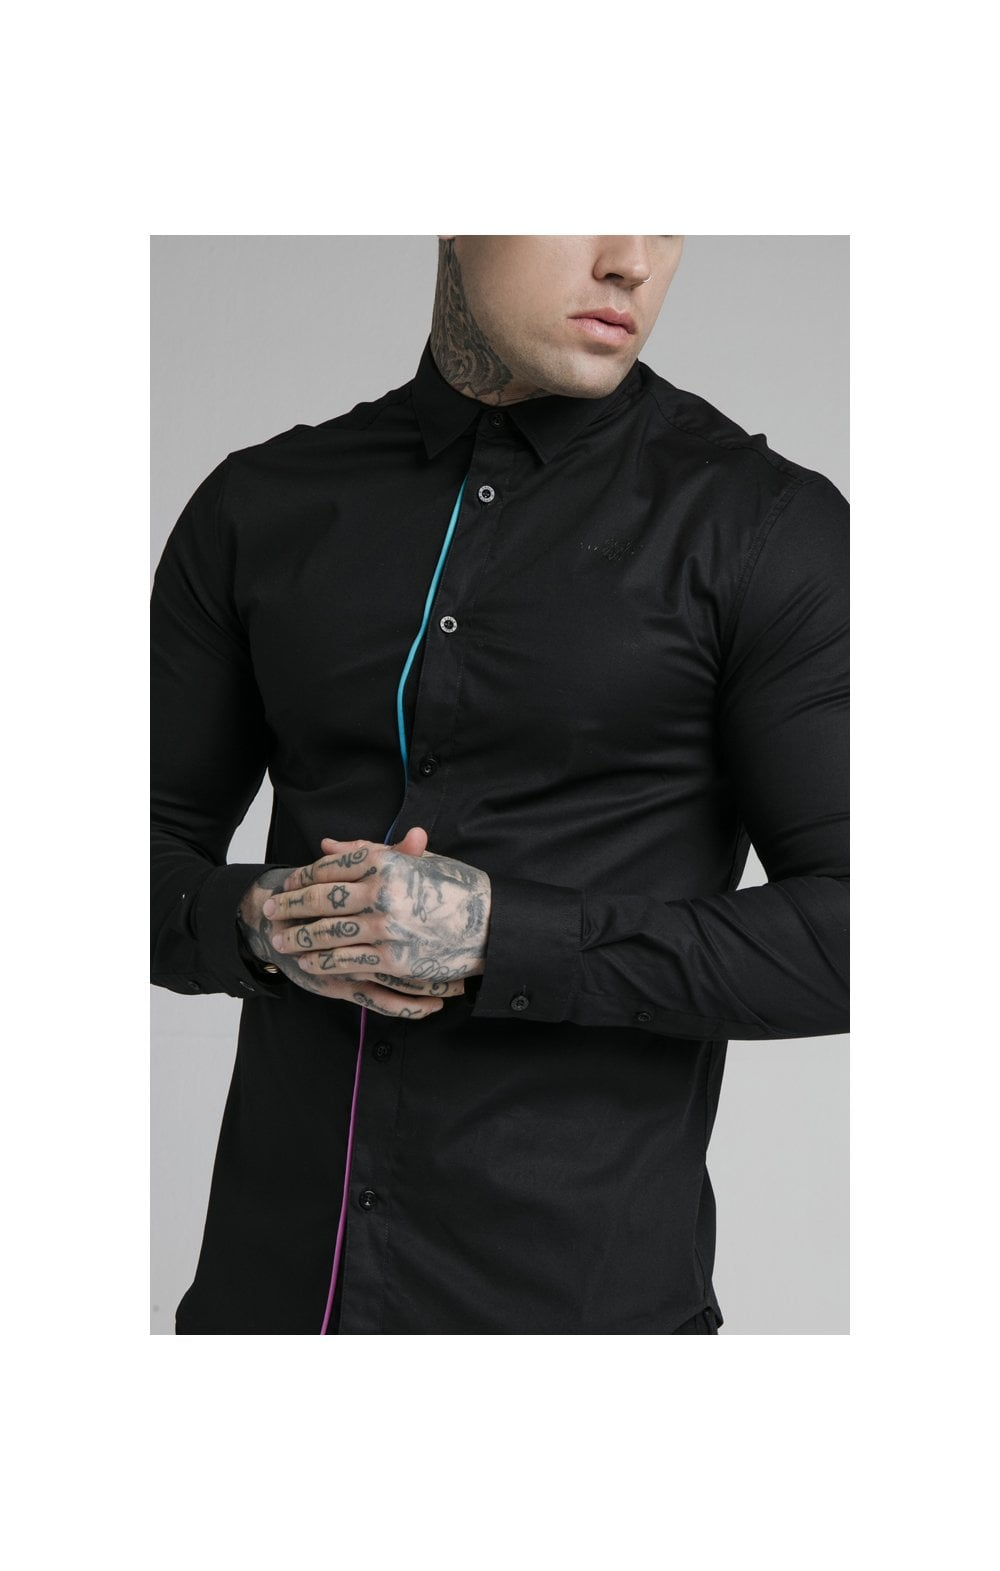 Load image into Gallery viewer, SikSilk L/S Fade Piping Shirt - Black & Neon Fade